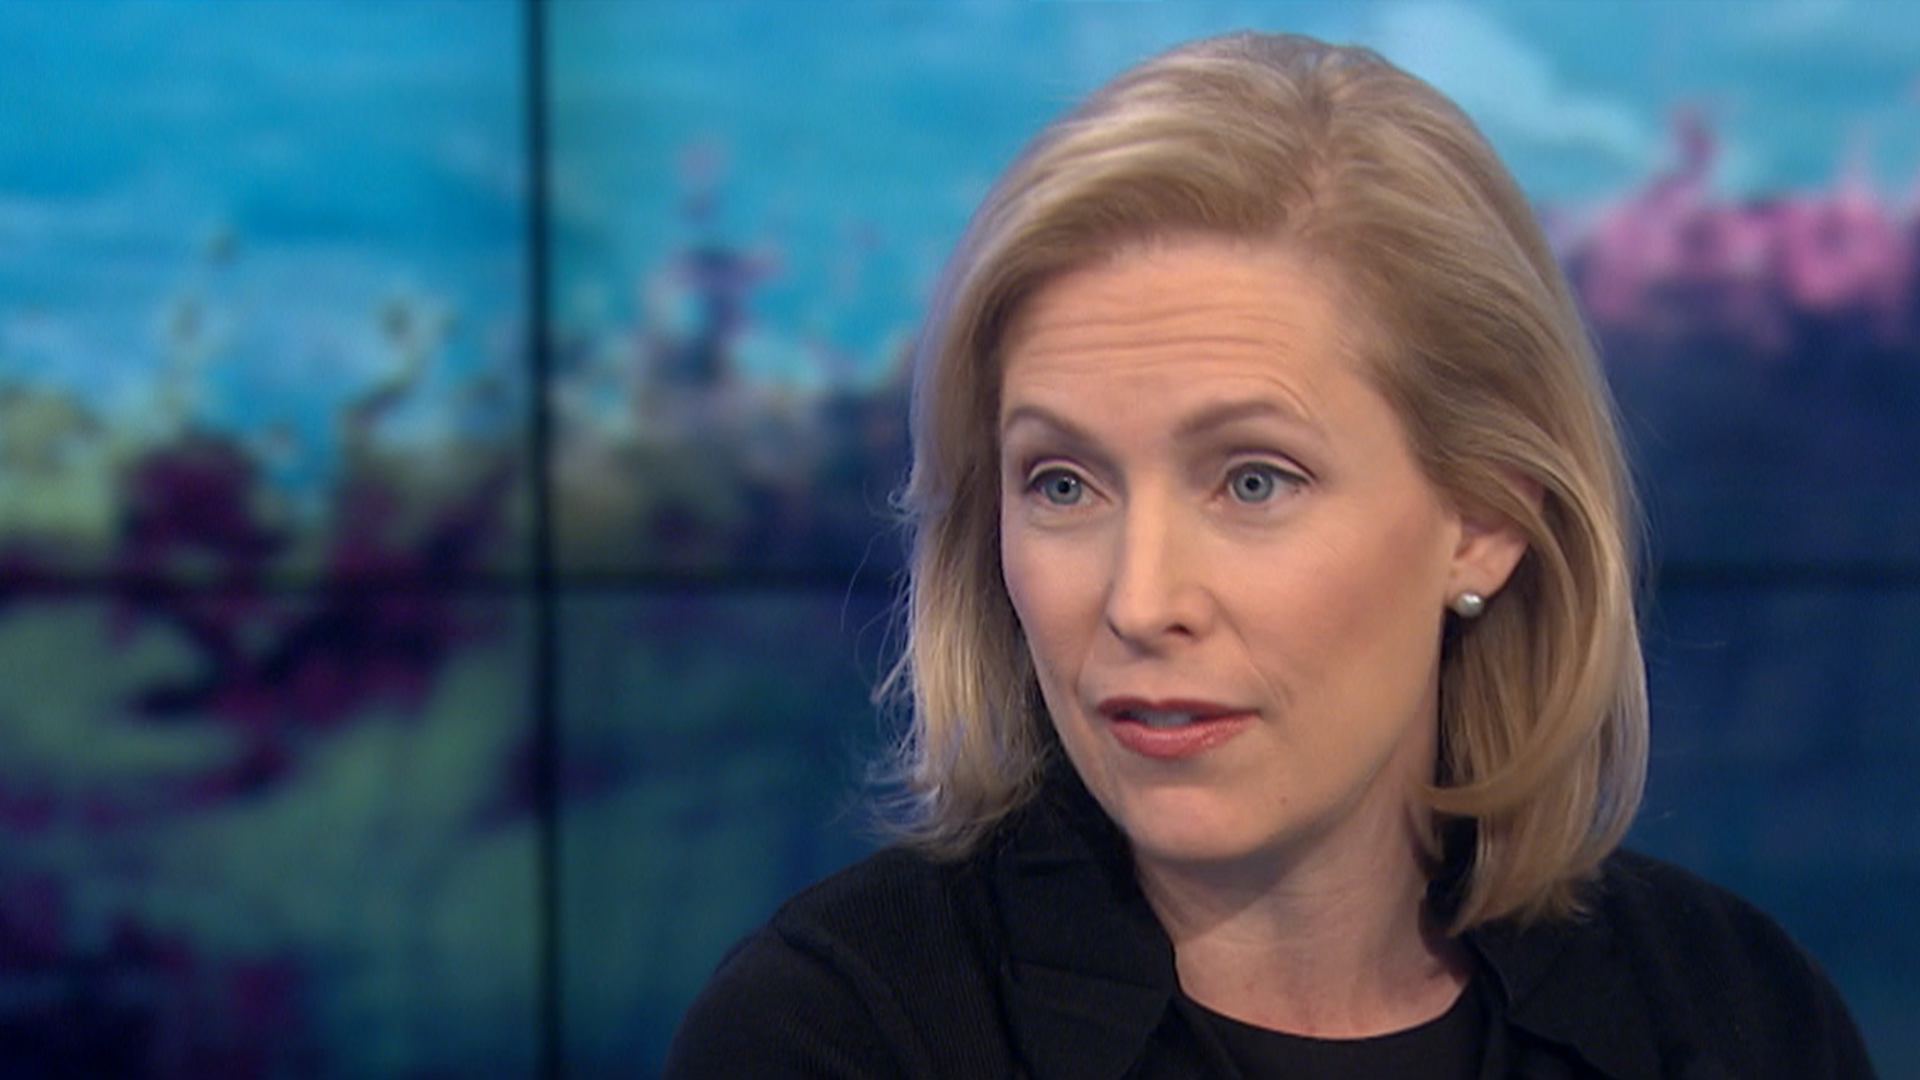 Kristen Gillibrand 'hopeful' for assault bill